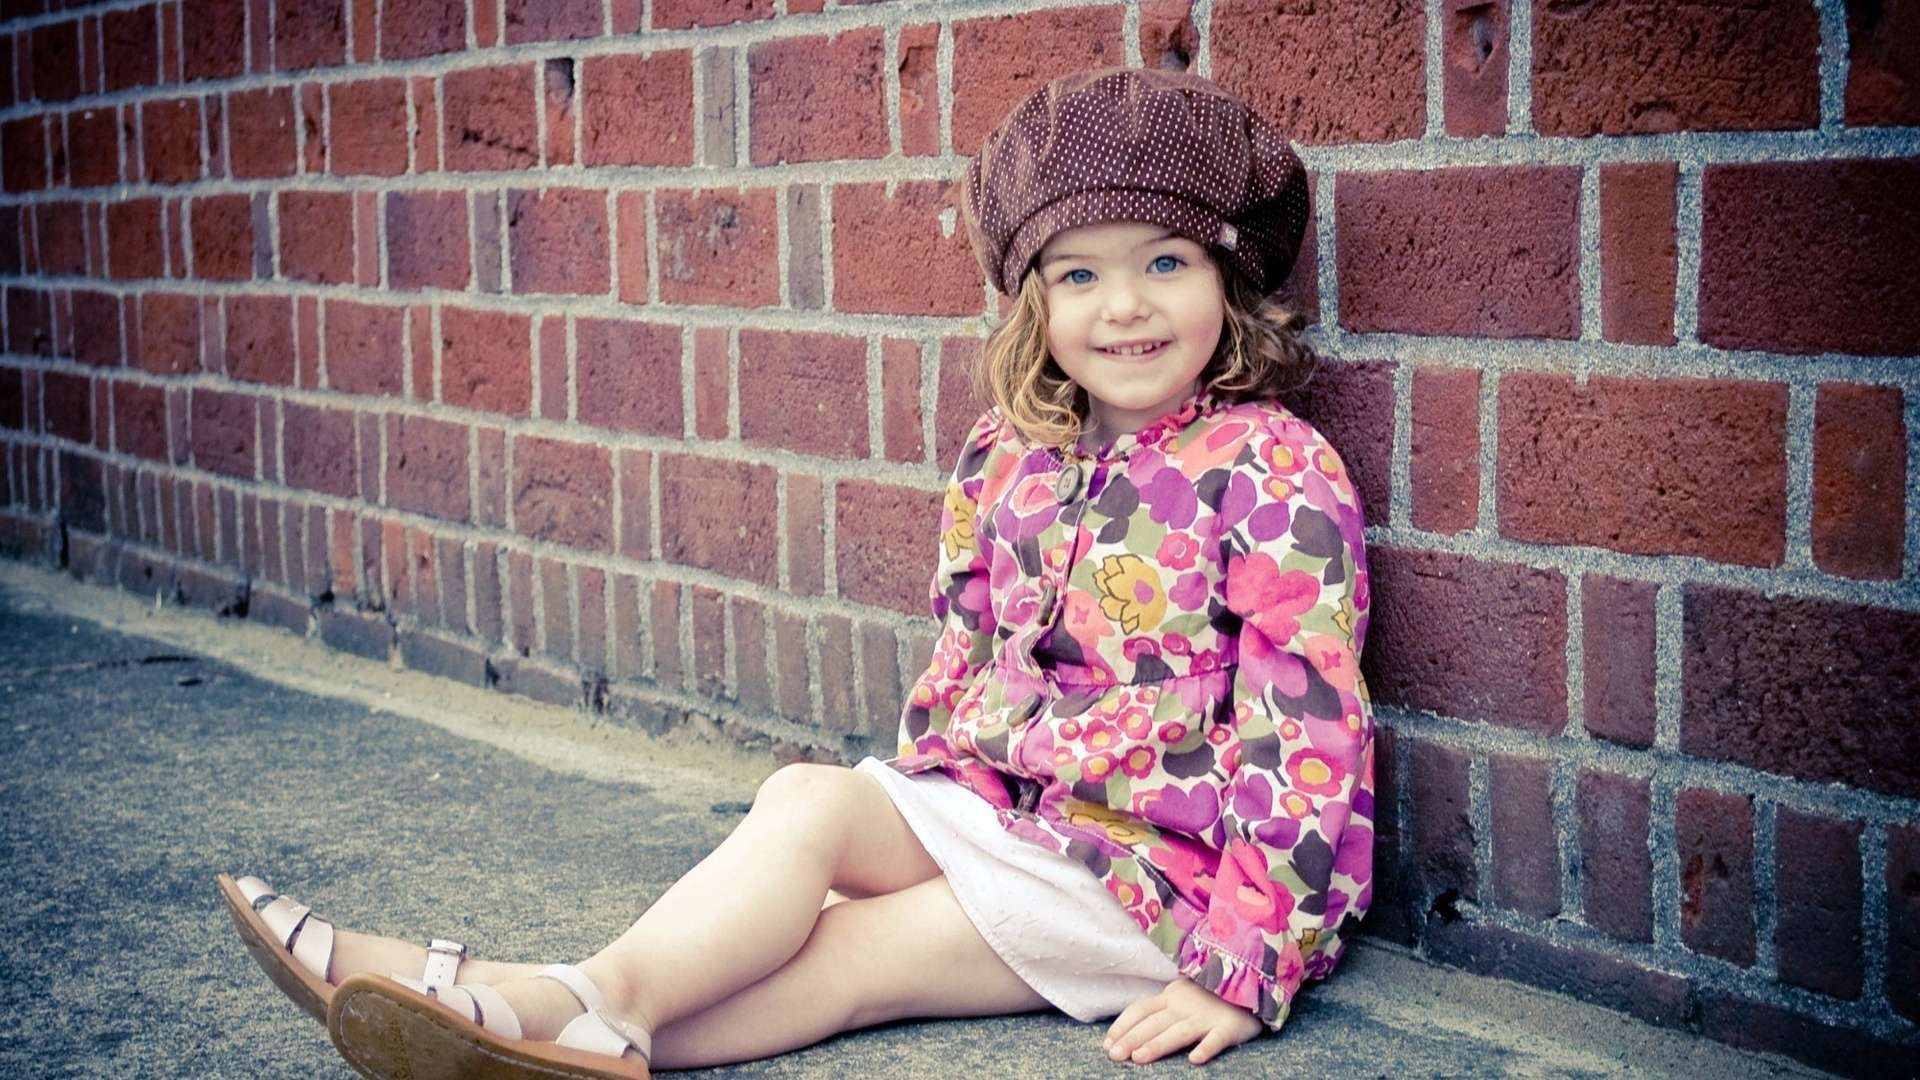 Princess Baby Girl Wallpaper Viewallpapers Pinterest More